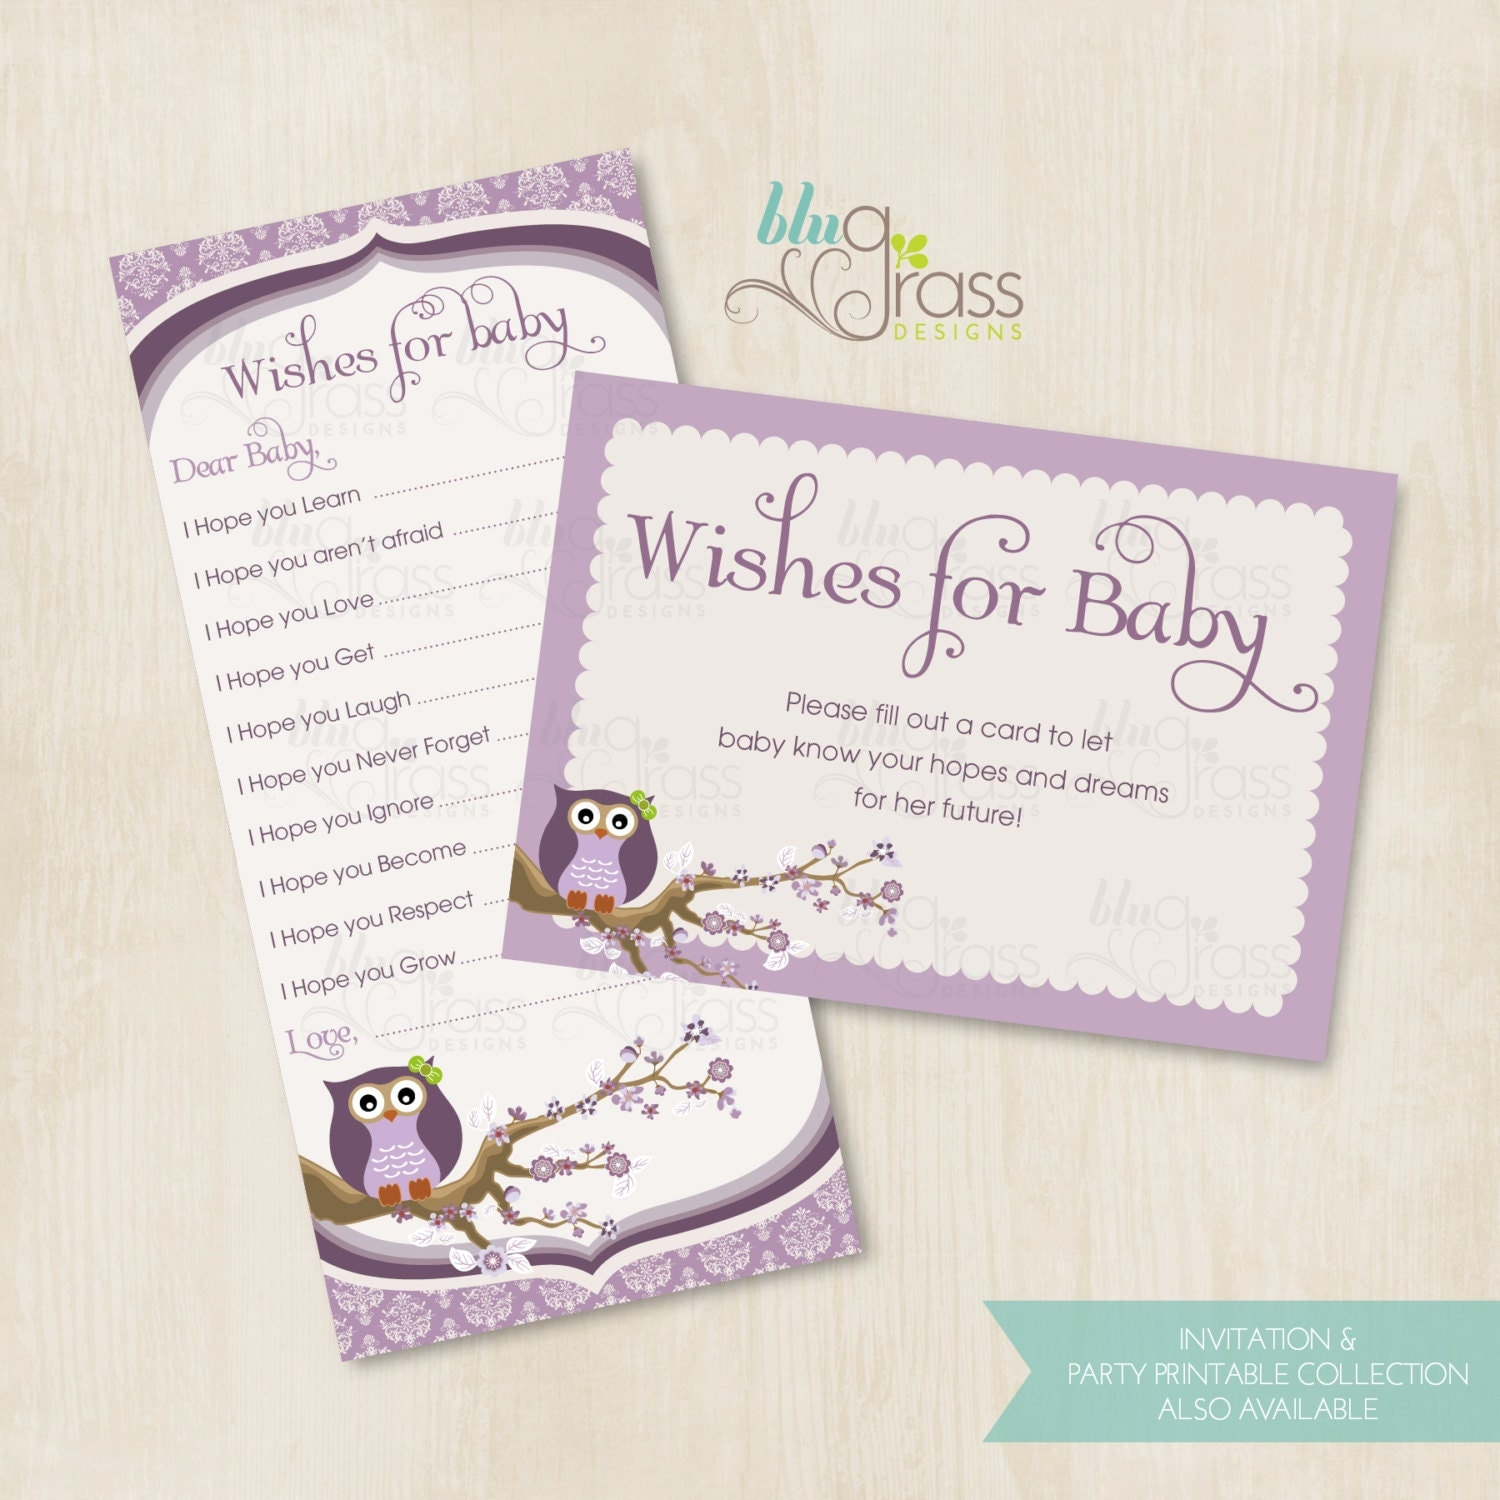 wishes for baby baby shower card byblugrass designs vintage